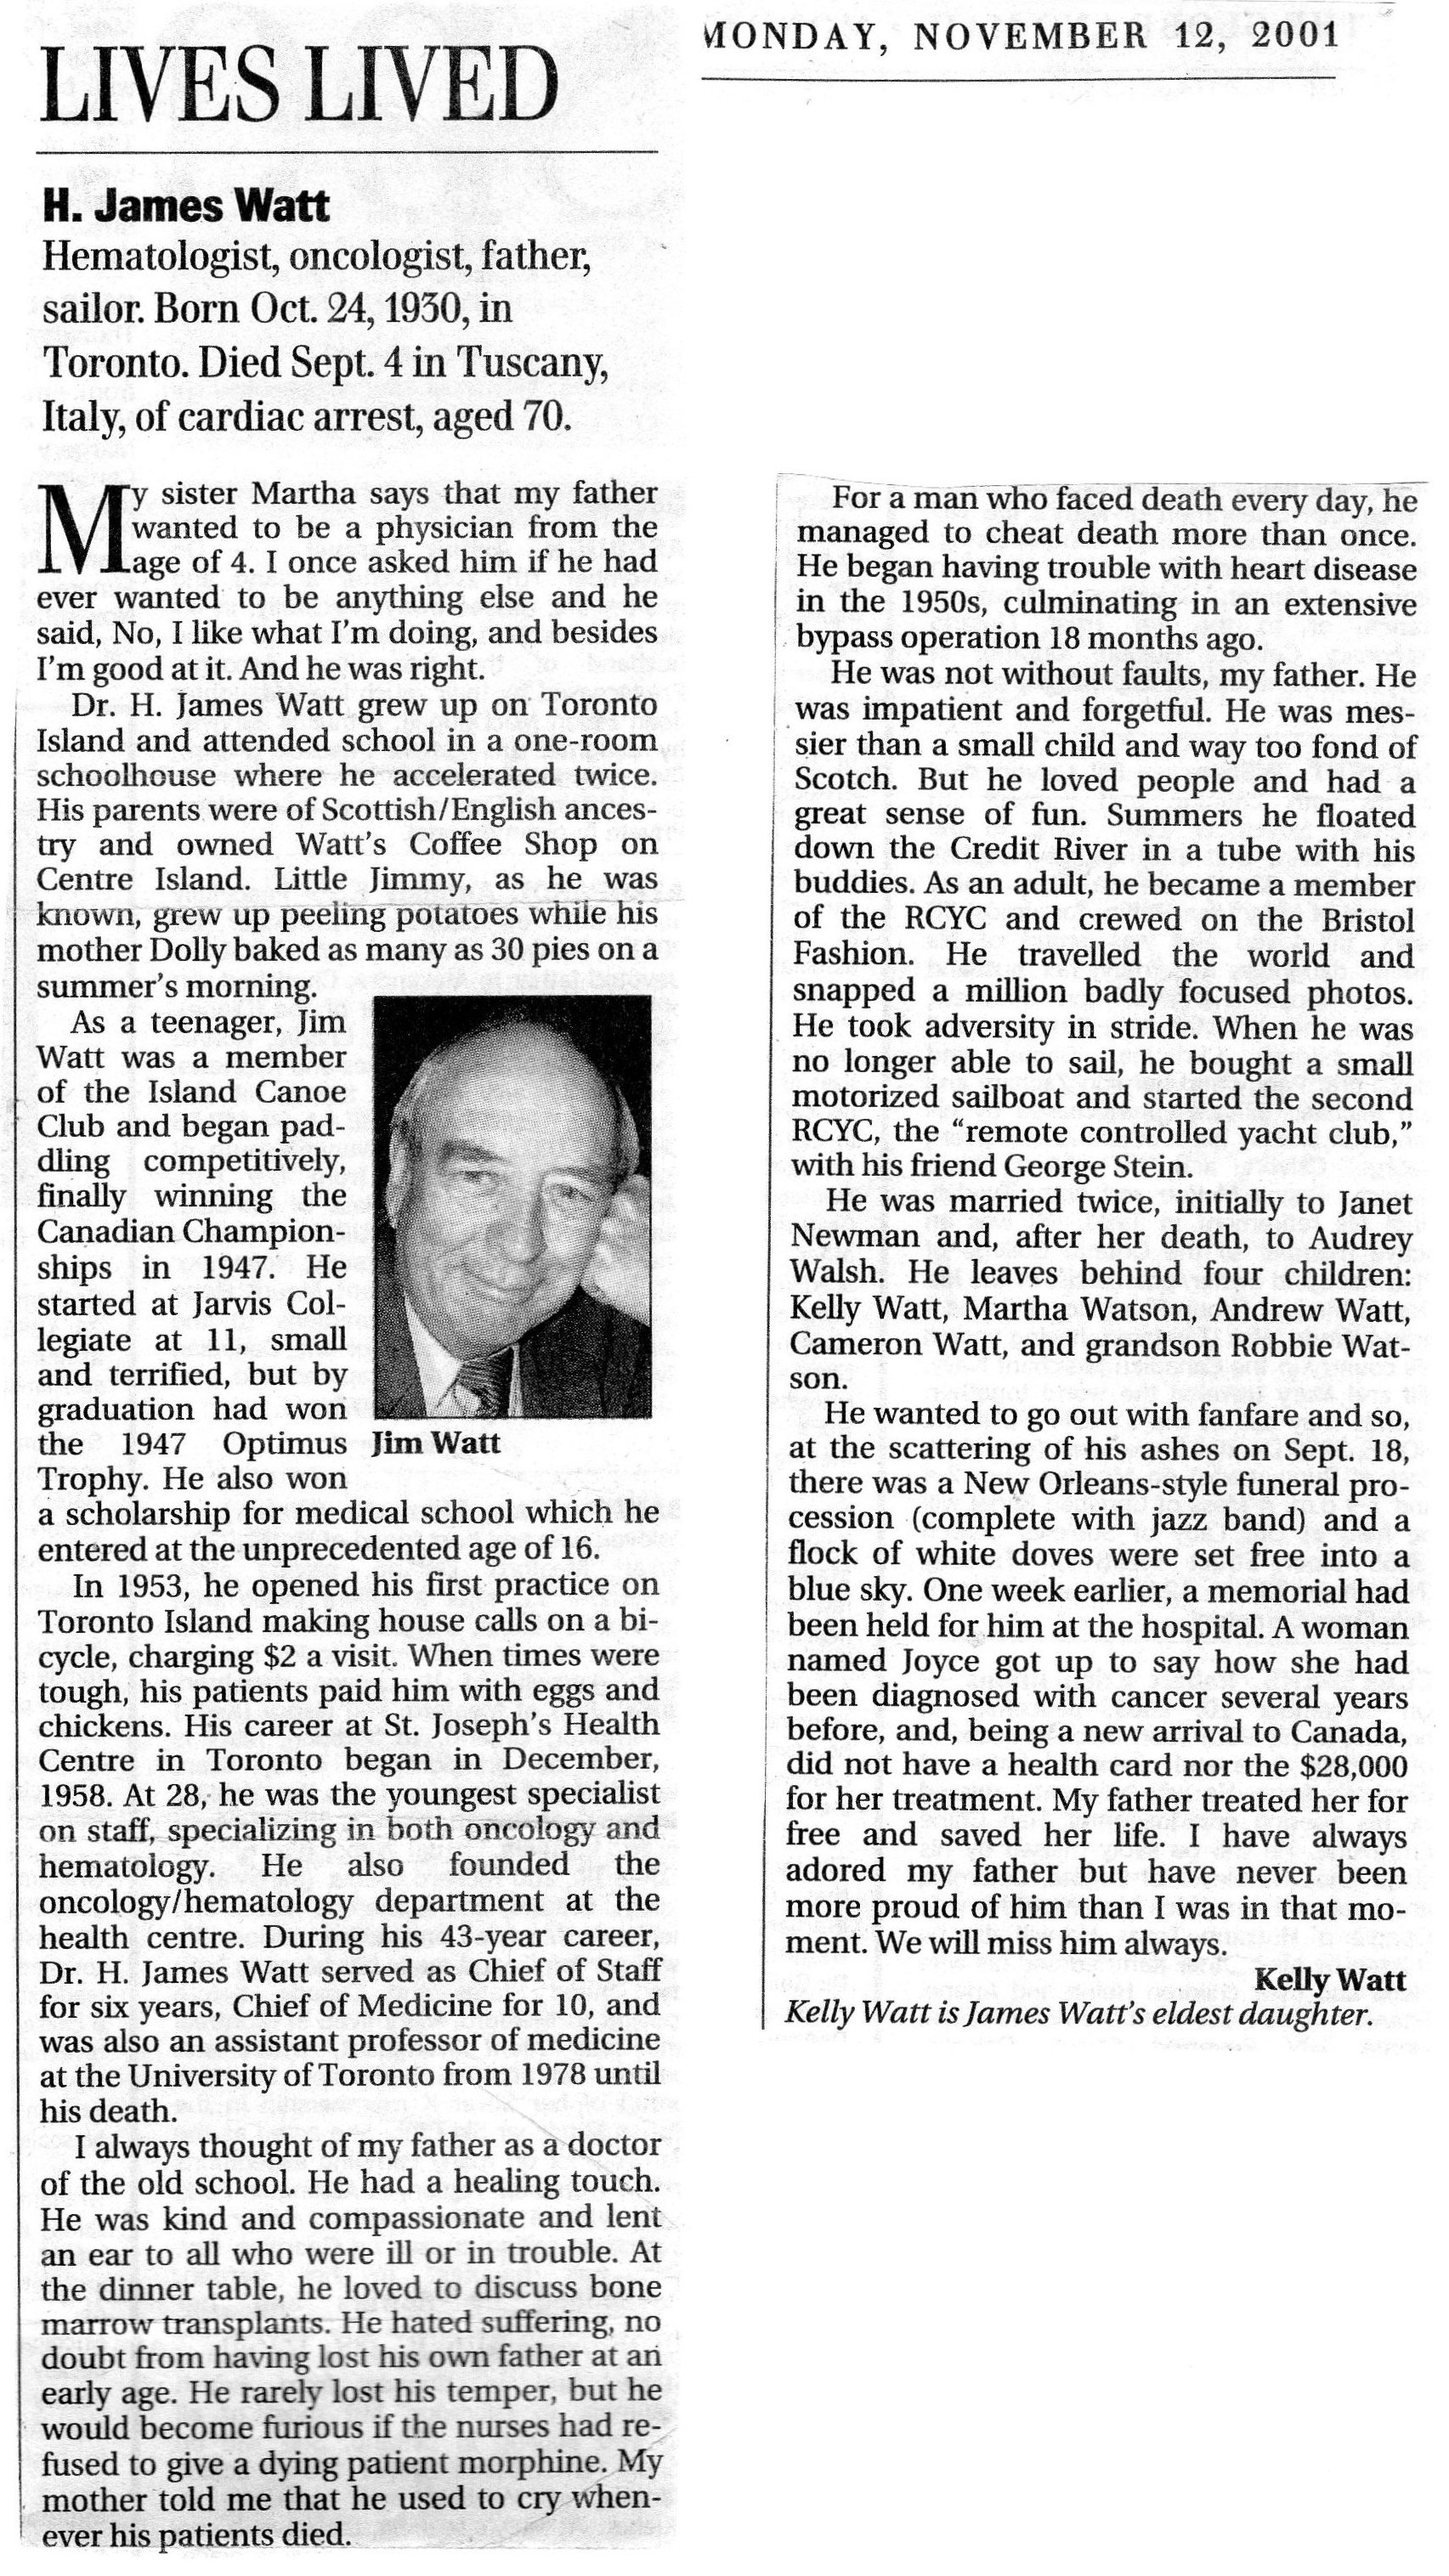 Obit-H. James Jim Watt Globe and Mail 2001-11-12